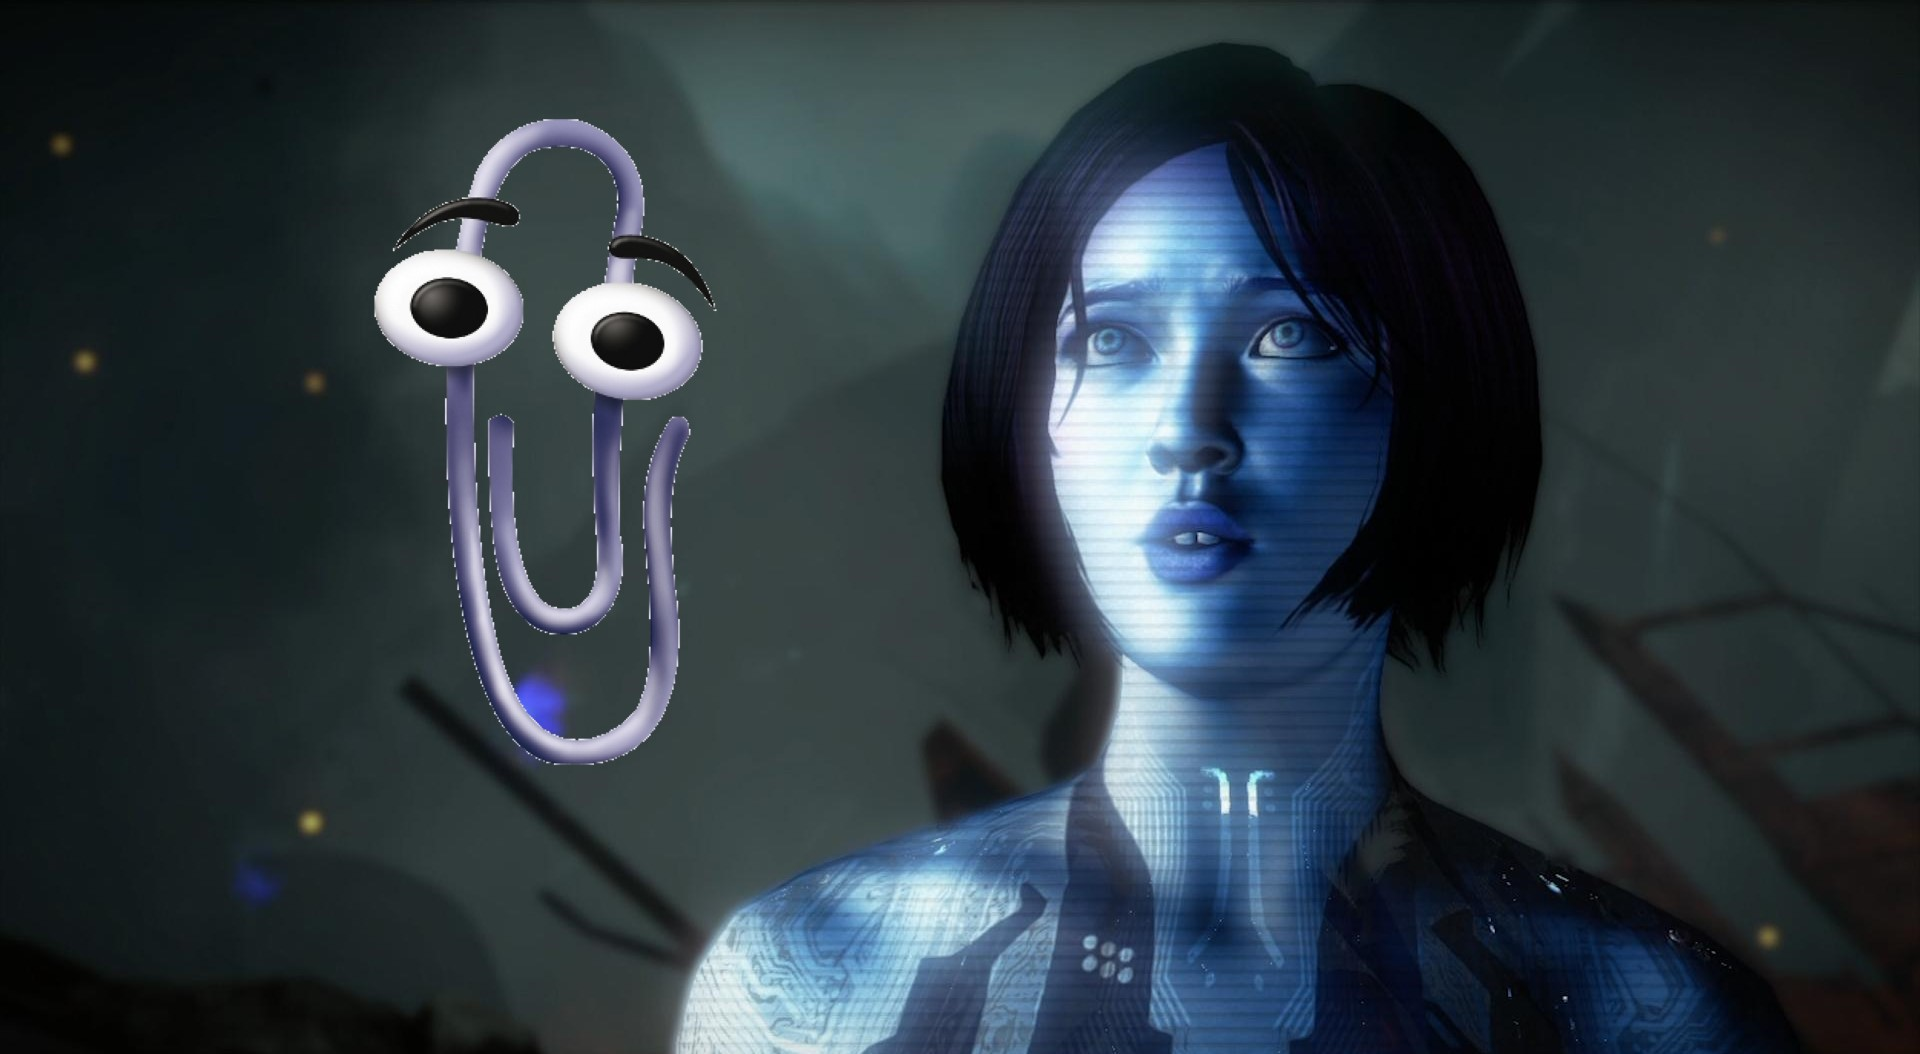 Microsoft Cortana Clippy